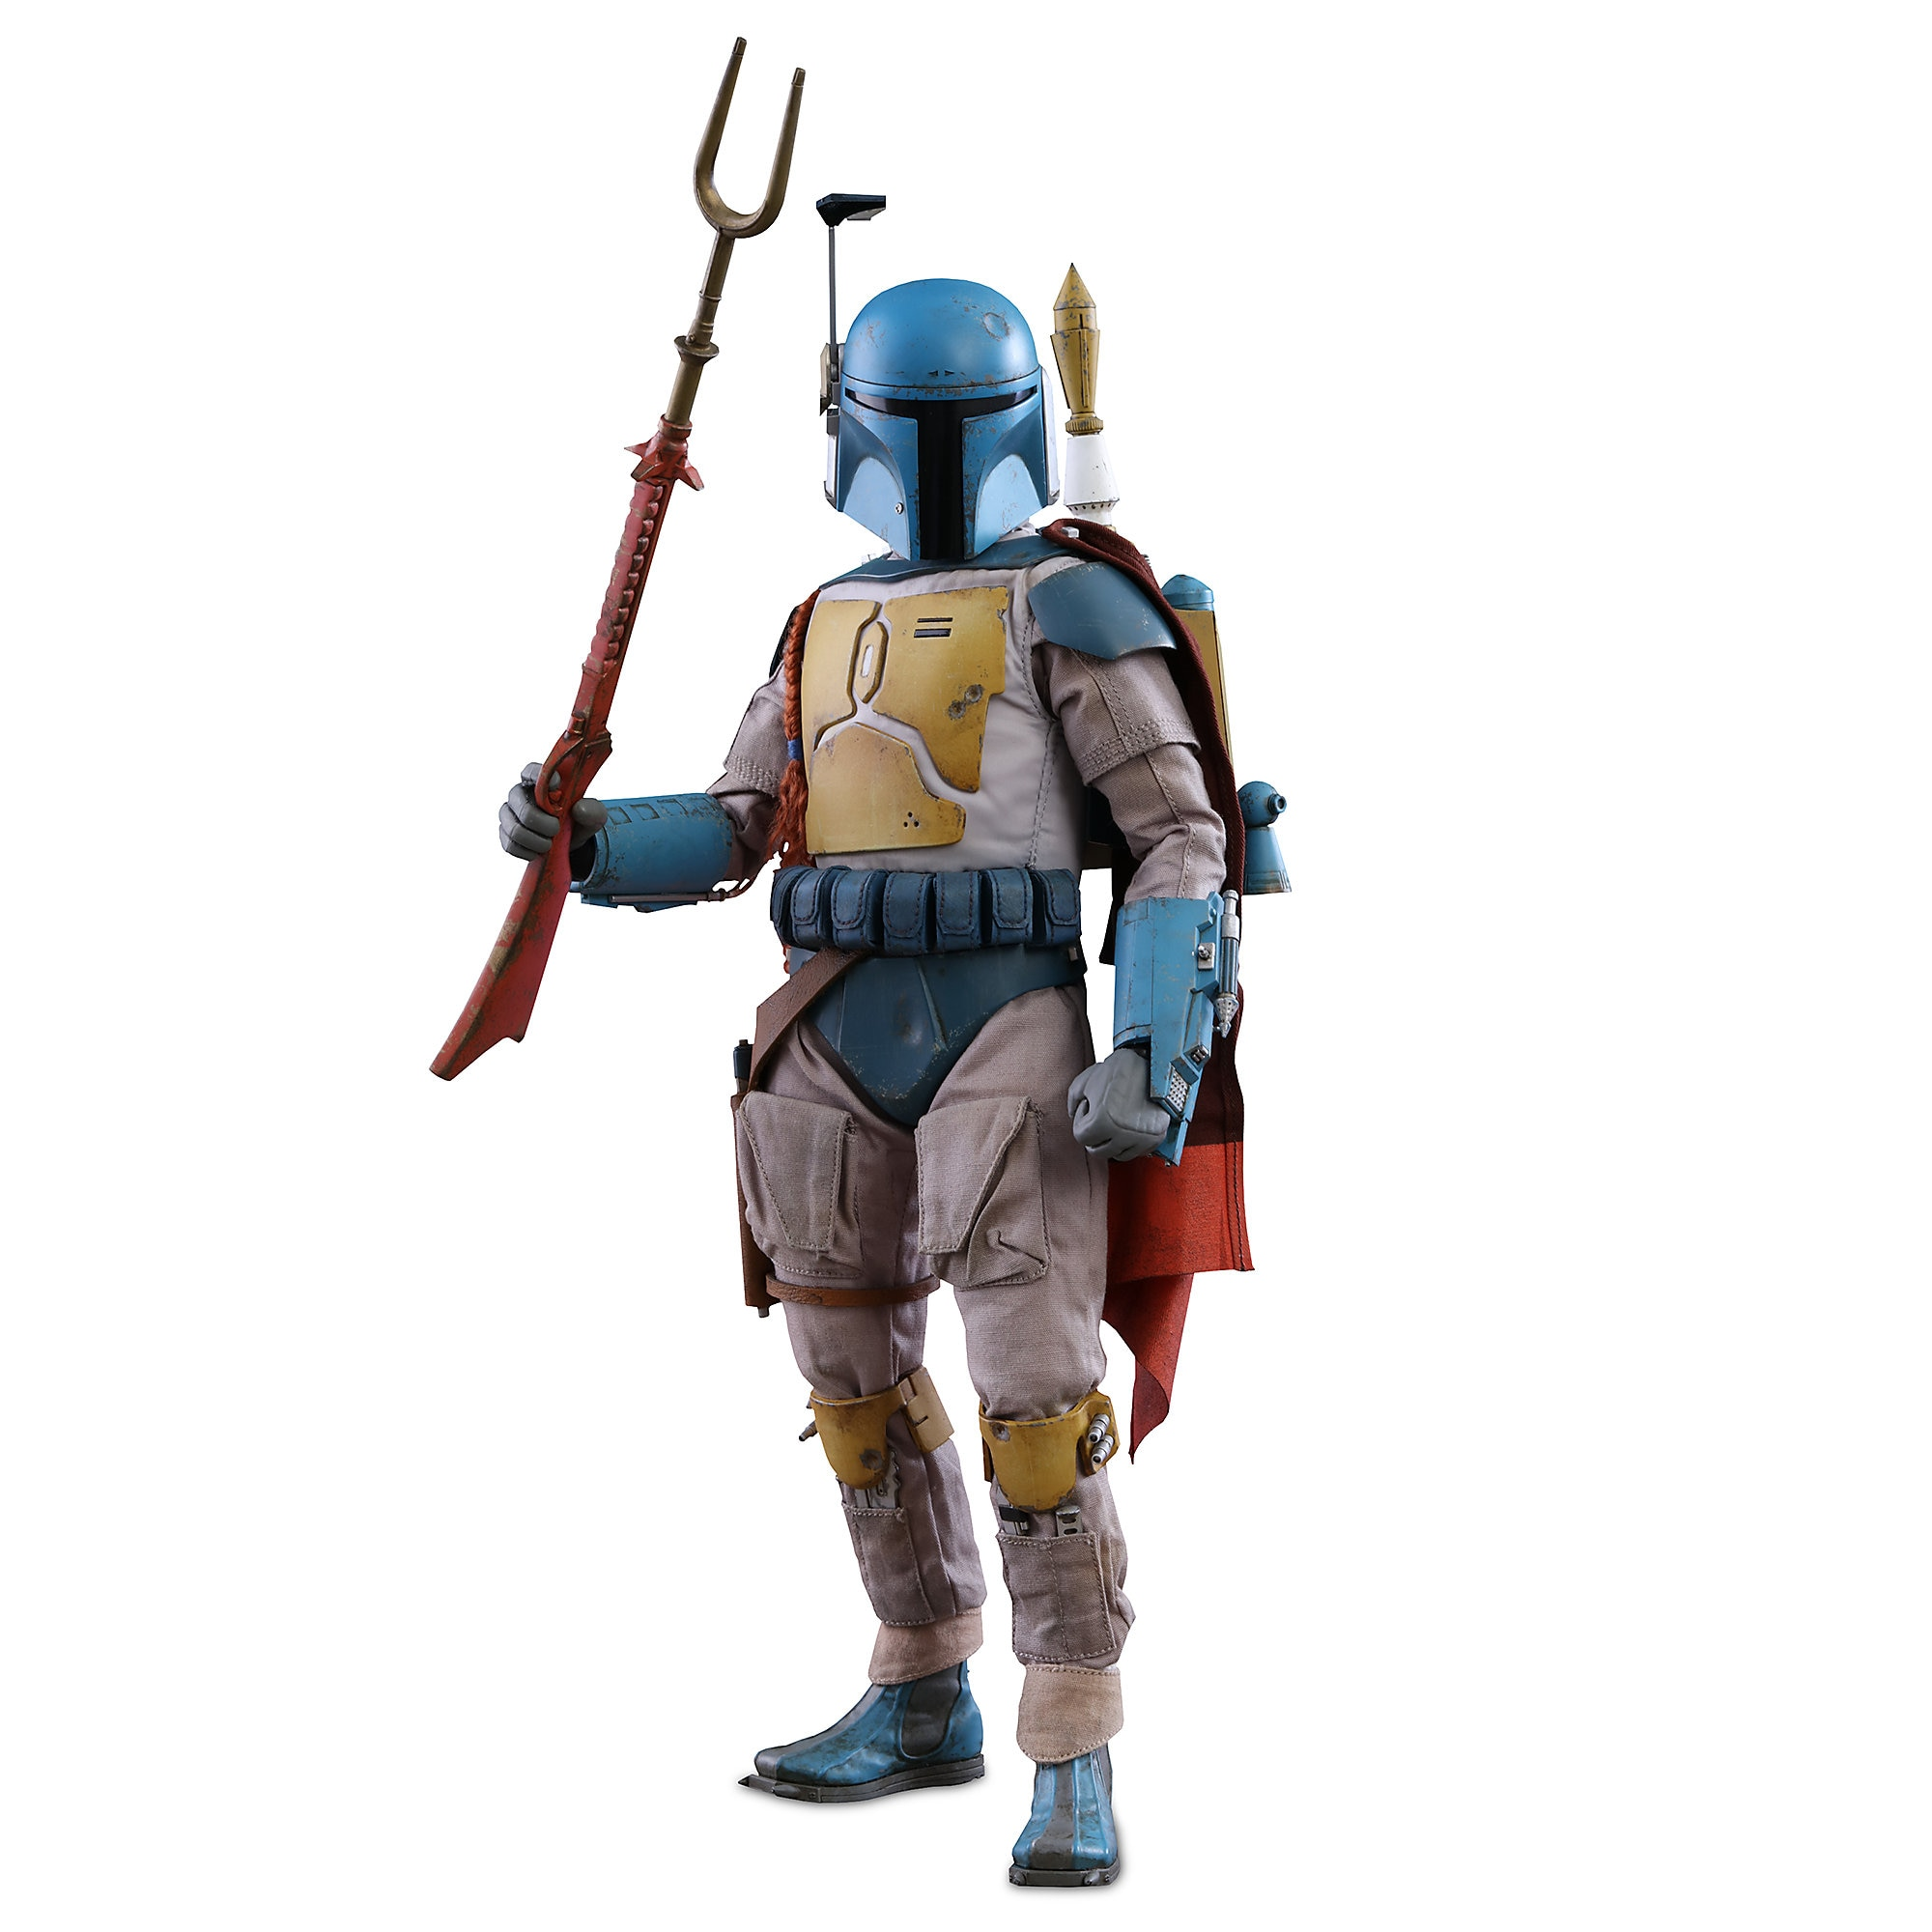 Boba Fett Sixth Scale Figure by Hot Toys - Star Wars